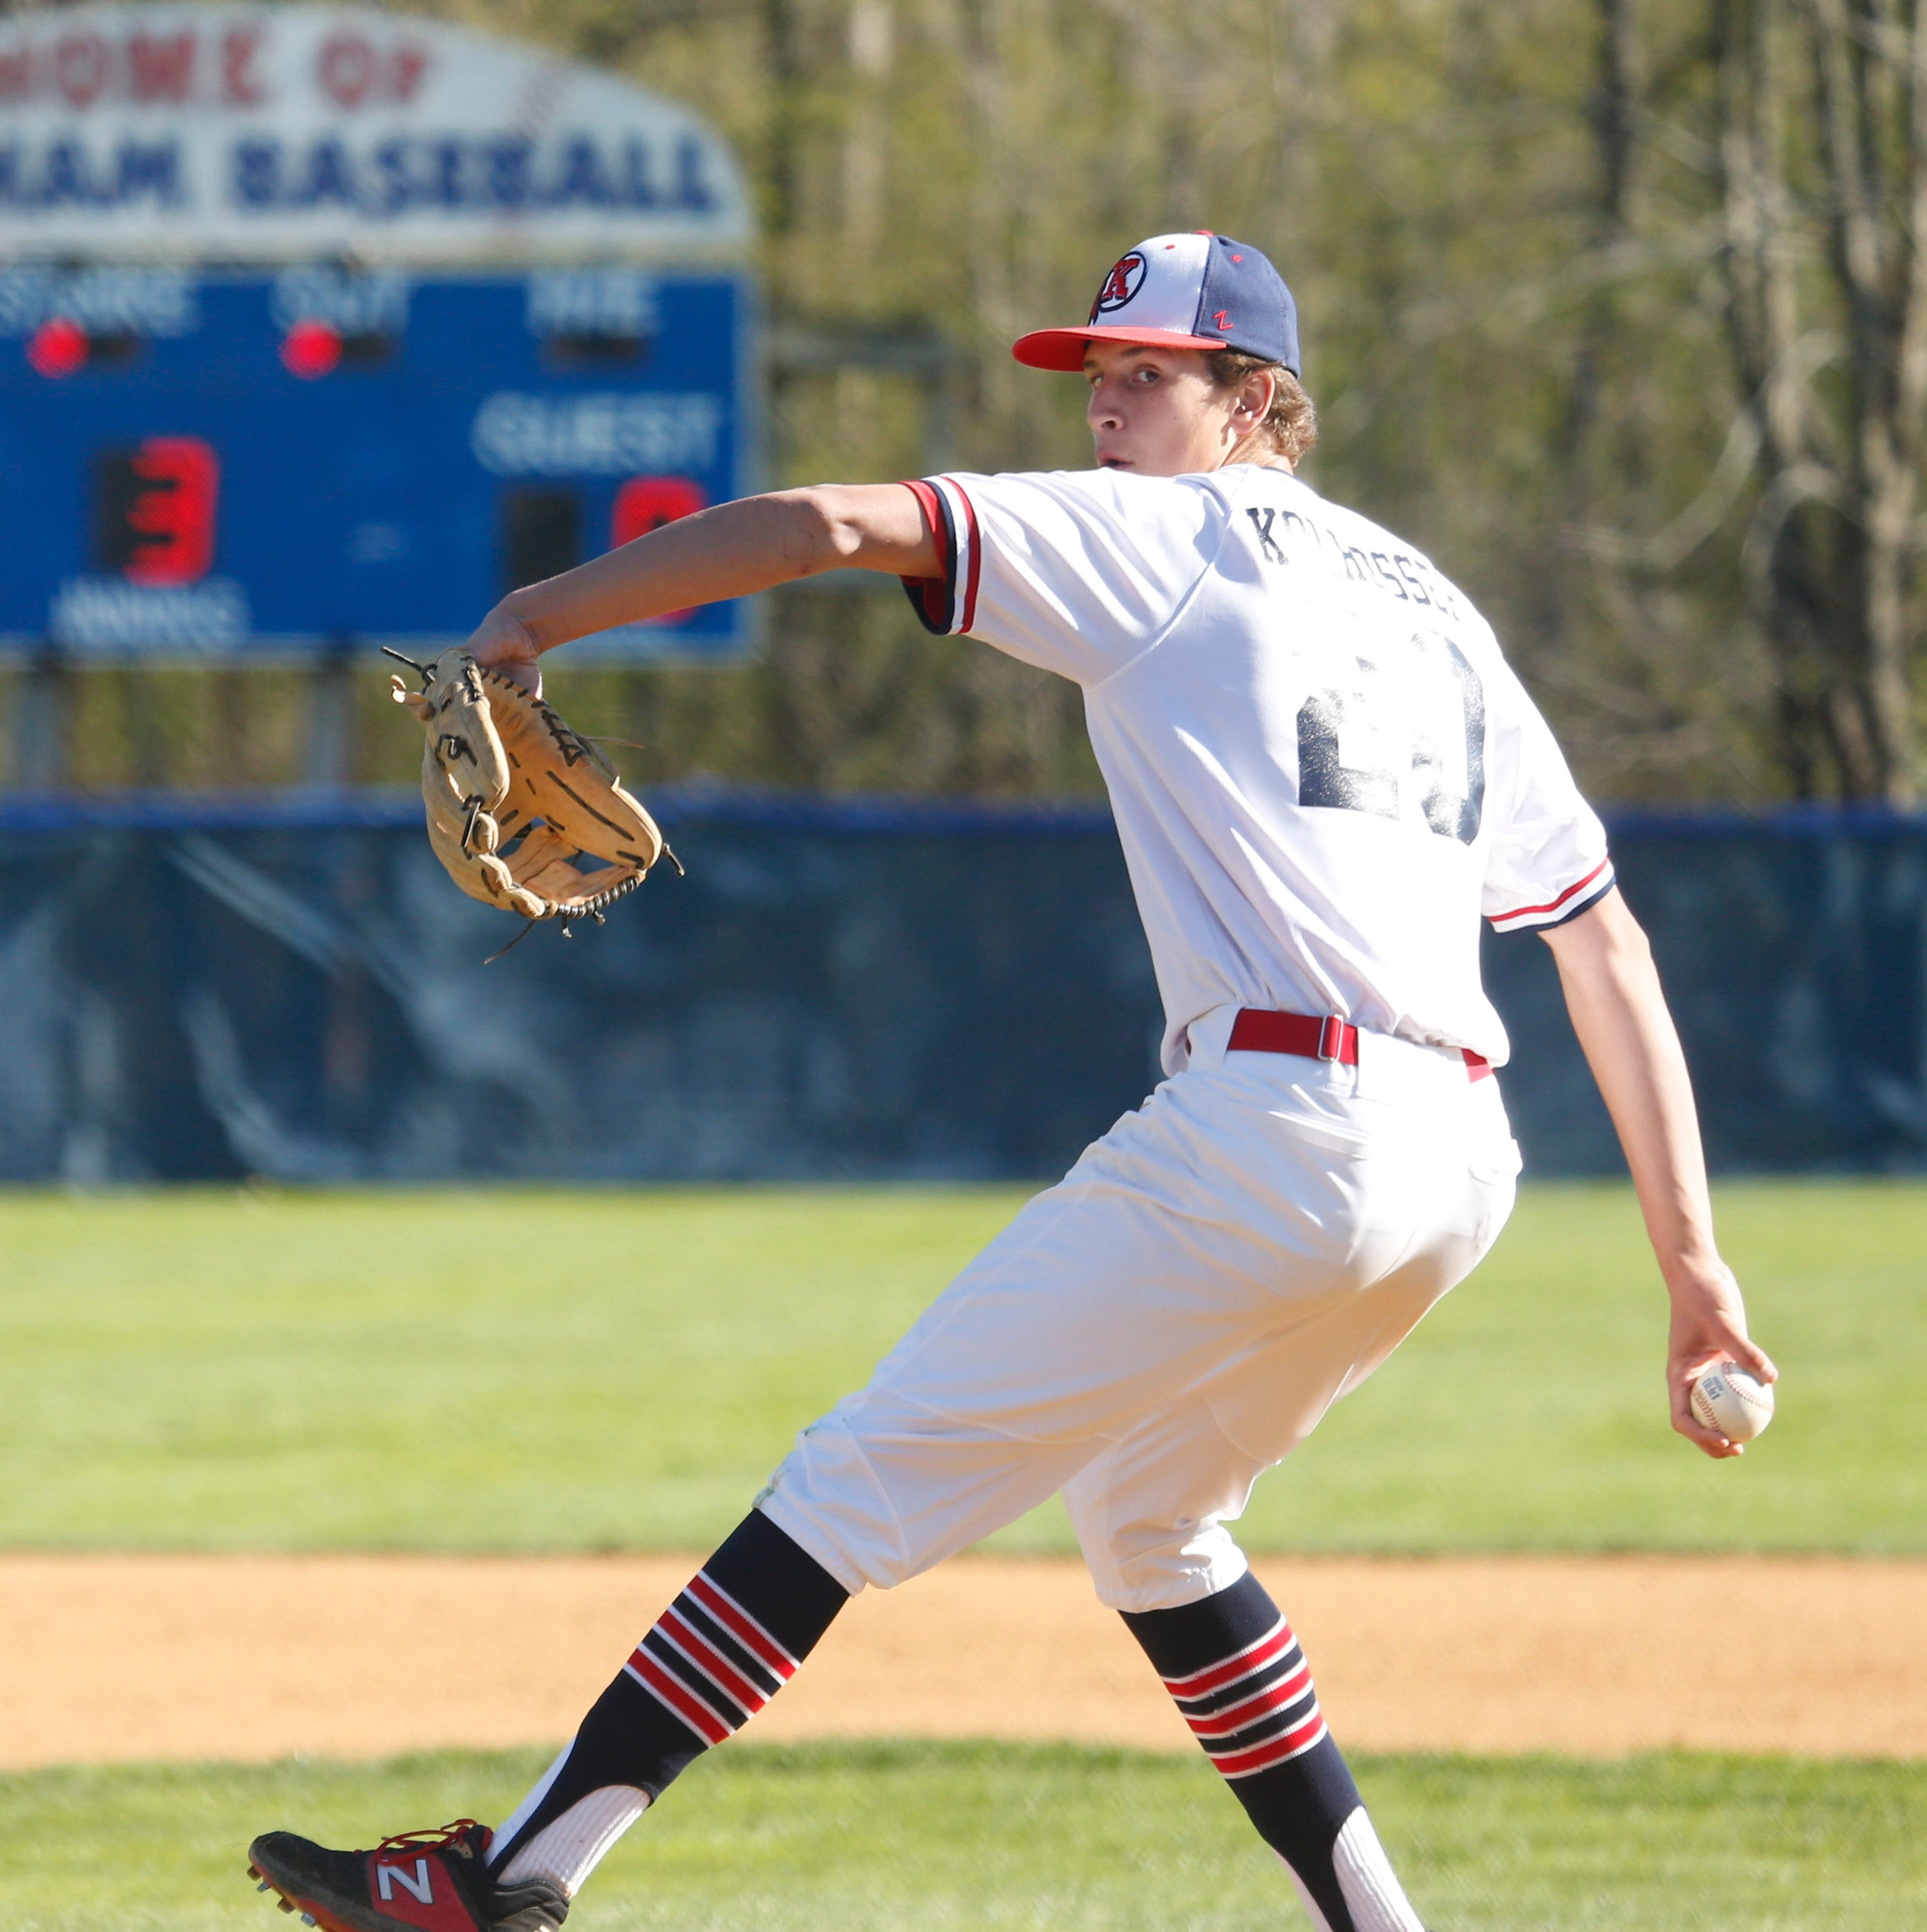 Baseball: Kolhosser, Ketcham deliver late as the Indians edge rival Arlington